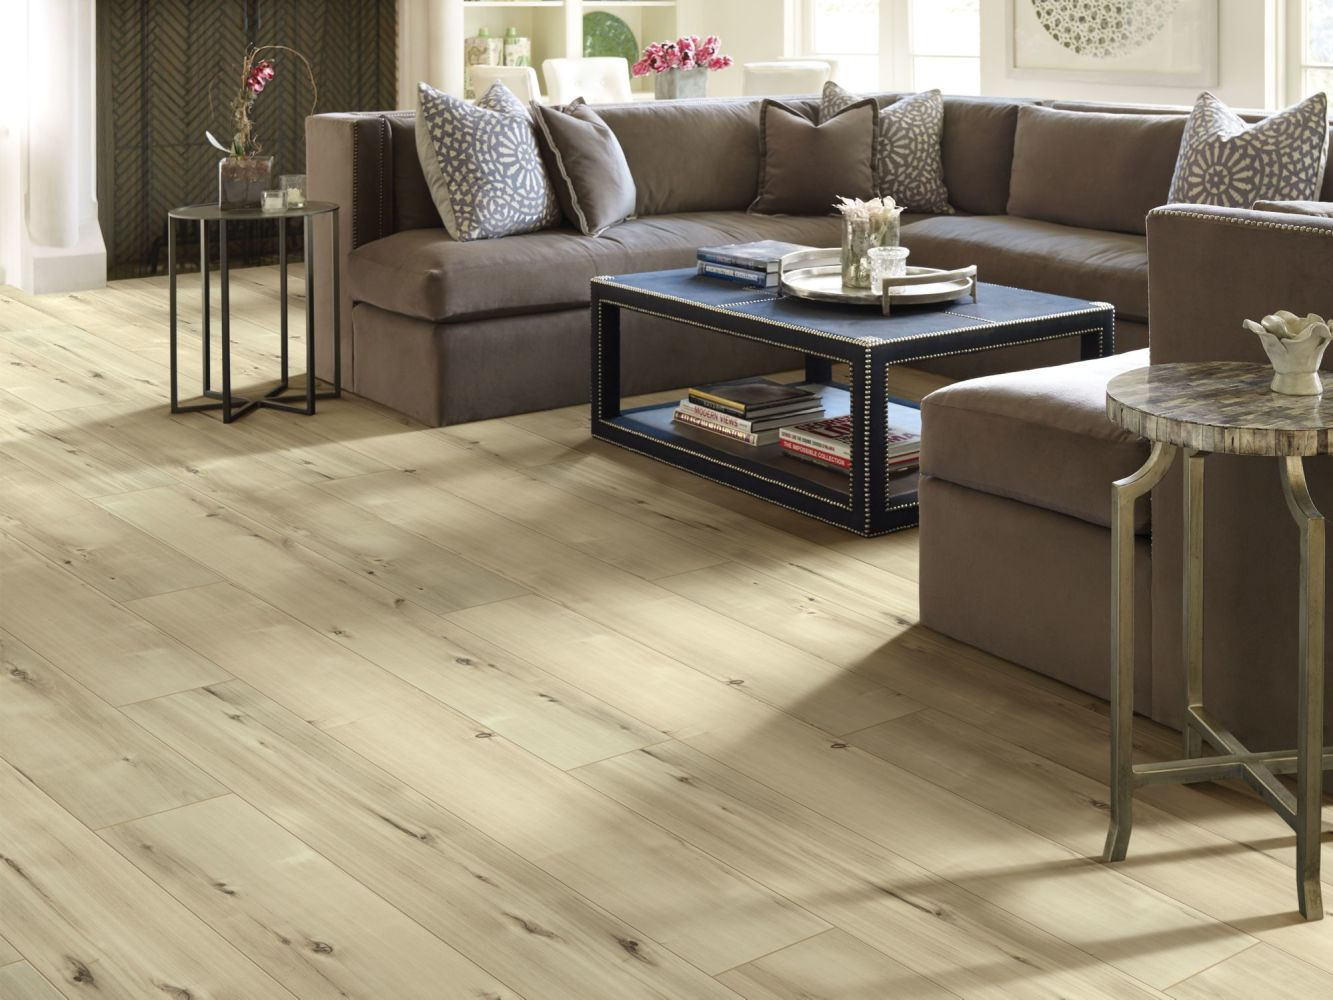 Shaw Floors Resilient Residential Allegiance+ Accent Freeport Hickory 02002_2008V